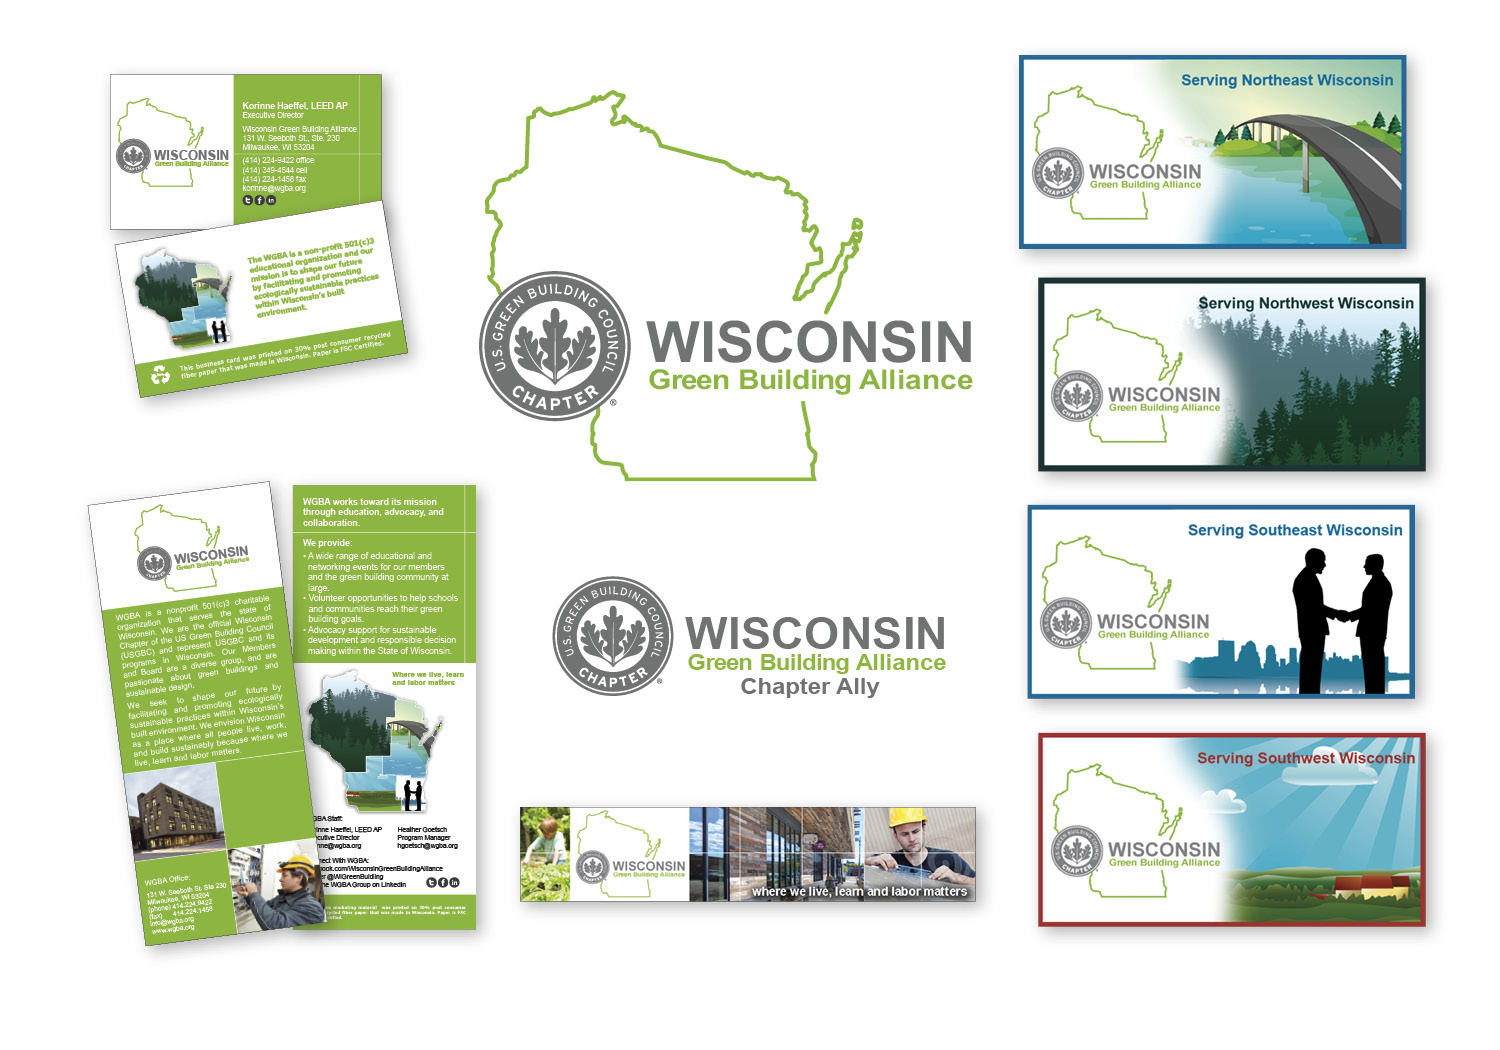 """The Wisconsin Green Building Alliance (WGBA) choose to contract with Evolution Marketing on their organization's rebranding efforts, due to Evolution Marketing's strong commitment to sustainability and their extensive network of local environmentally responsible suppliers (i.e. for ink, printing, paper, signs, etc). Korinne Haeffel WGBA Executive Director further explains, """"We really appreciate the holistic approach to sustainable design and environmentally responsible project management that members of the Evolution Marketing team have brought to our attention. From suggestions regarding sustainably sourced WI made, FSC papers, to recommendations on which print house to use based on the printers sustainability credentials.""""  """"When we tell our sustainable operations story, it is nice to be able to share with our members that Evolution Marketing (our marketing/design team) and Watertown Budget Print (our printer) both align well with our mission by having embraced sustainable operations within their own facilities such as implementing composting programs at their respective offices. It is wonderful to have found a trustworthy organization that has sustainability interwoven into everything they do,"""" Haeffel explained."""